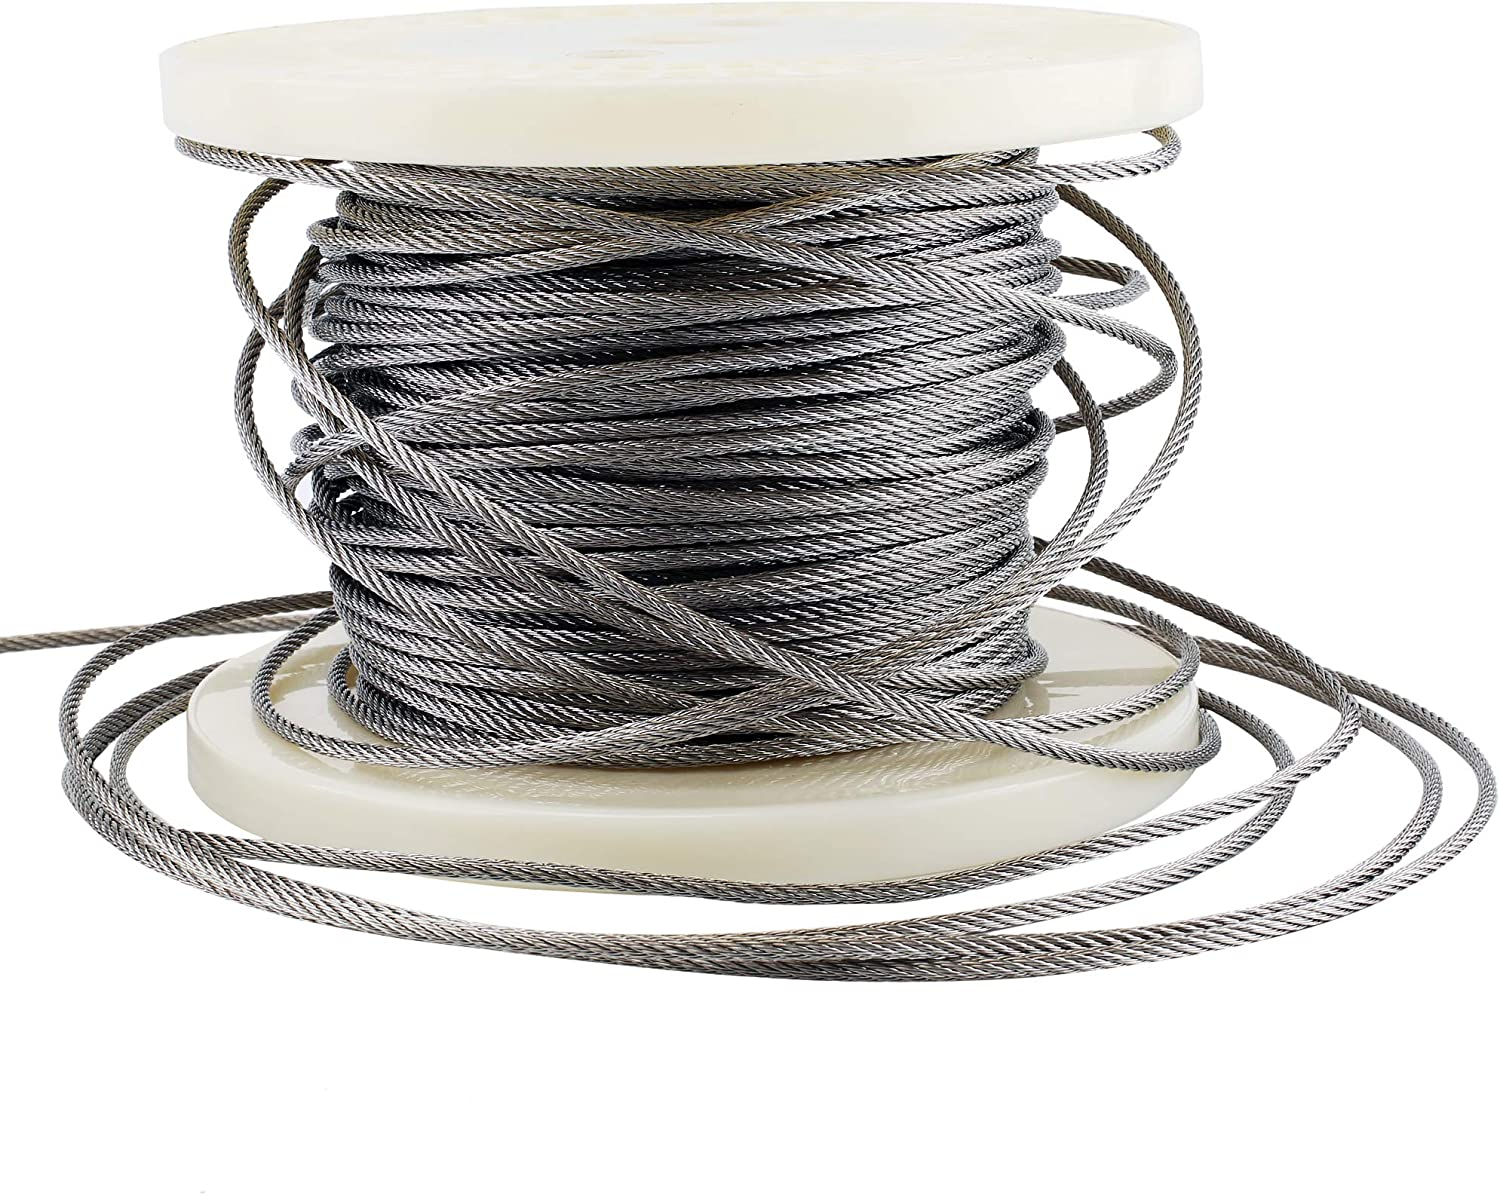 Decking DIY Balustrade LS Muzerdo 200Ft Stainless 1//8Inch Aircraft Steel Wire Rope Cable 7x7 for Railing